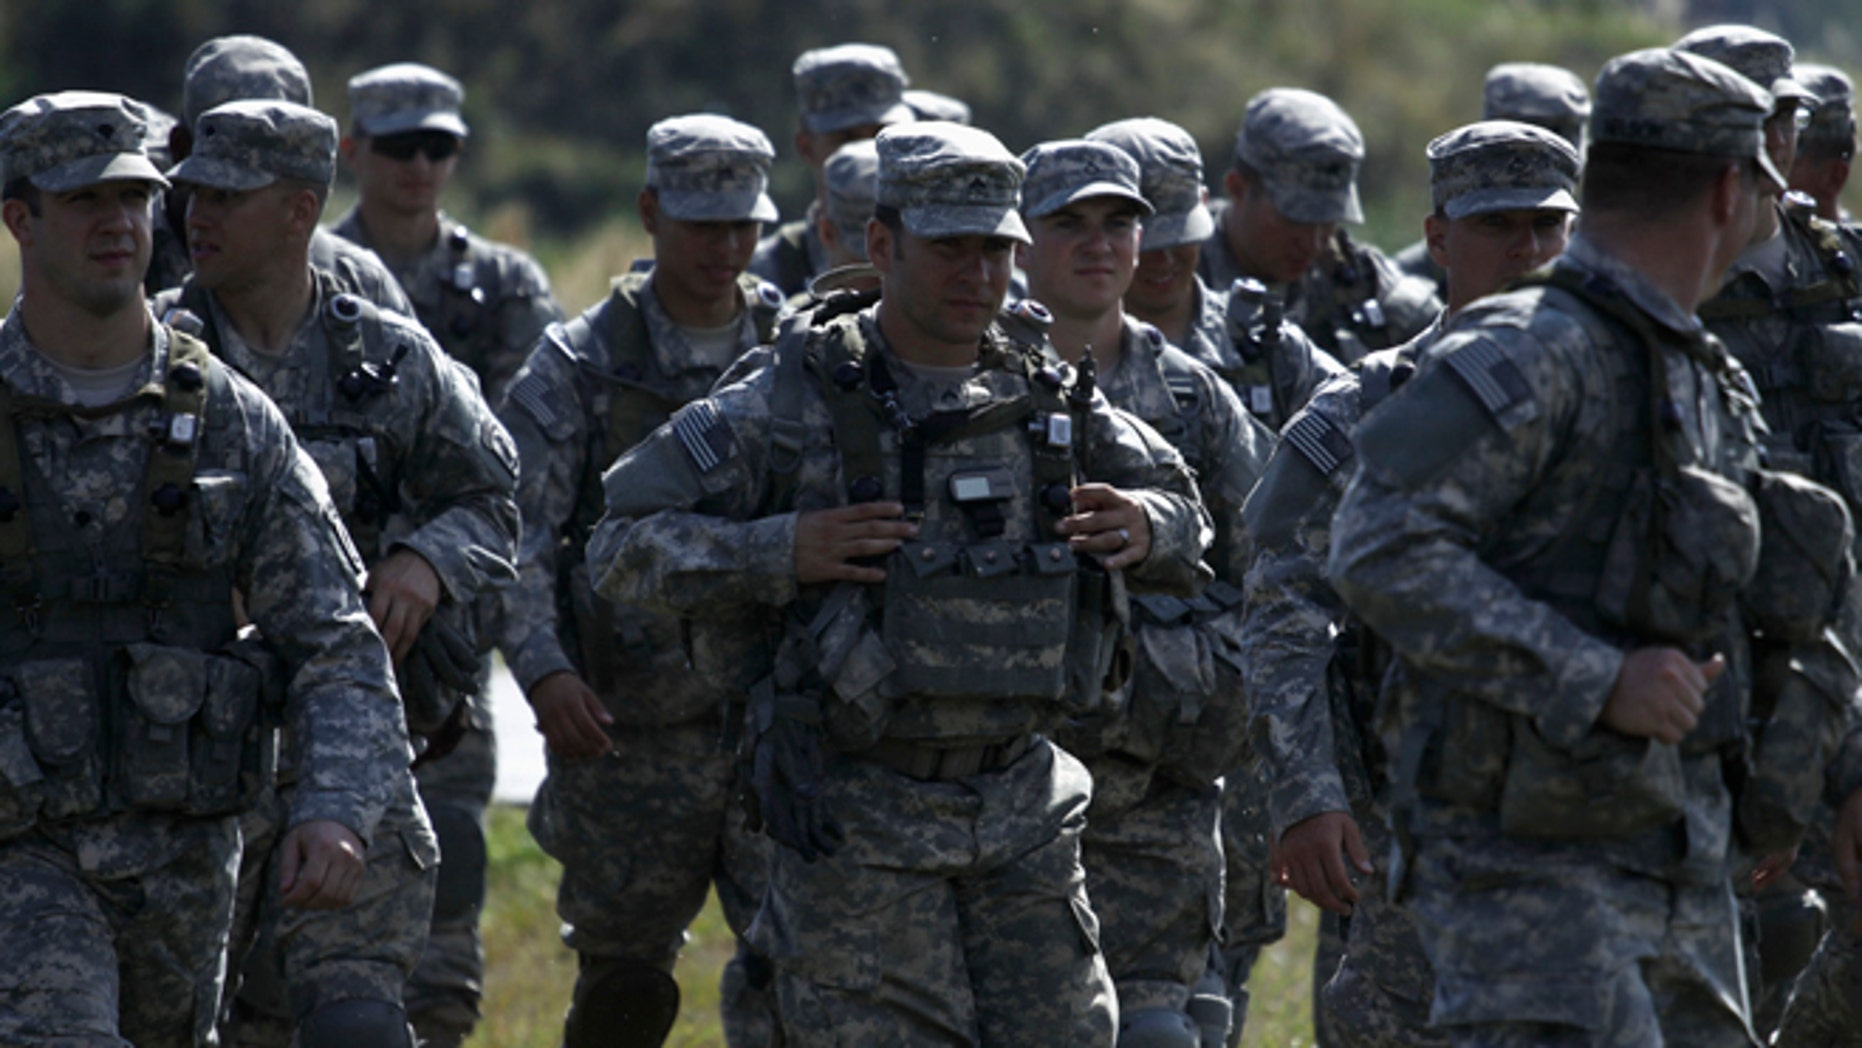 In this Sept. 19, 2014 photo, U.S. servicemen take part in military exercises outside the town of Yavoriv near Lviv, in Ukraine.